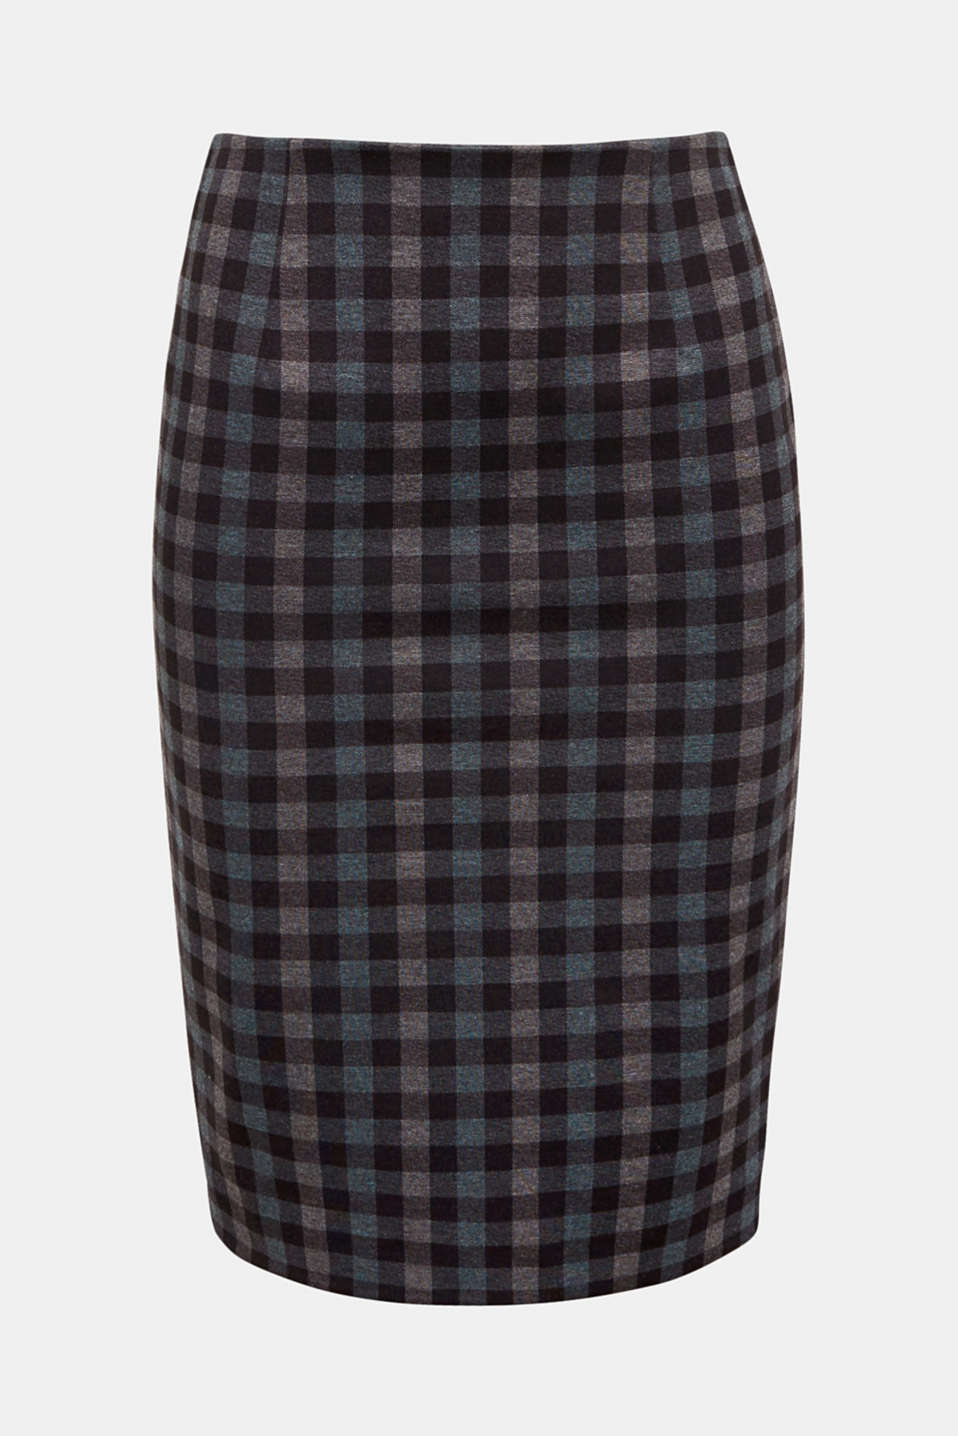 This feminine pencil skirt with added stretch for comfort and a classic check pattern combines the high art of tailoring with a comfortable fit!